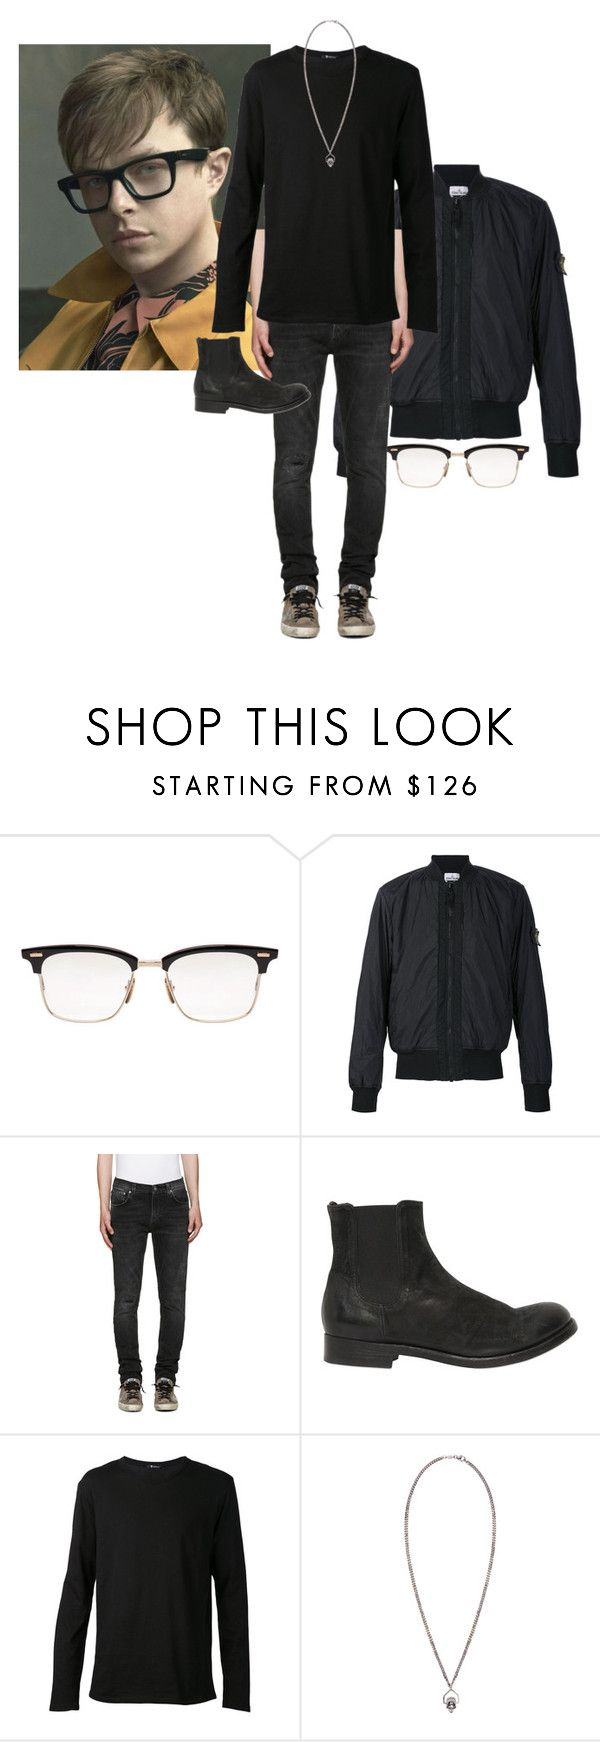 """Warren Heiland"" by ashleyr0sexo ❤ liked on Polyvore featuring Thom Browne, STONE ISLAND, Nudie Jeans Co., The Last conspiracy, T By Alexander Wang, Alexander McQueen, men's fashion and menswear"